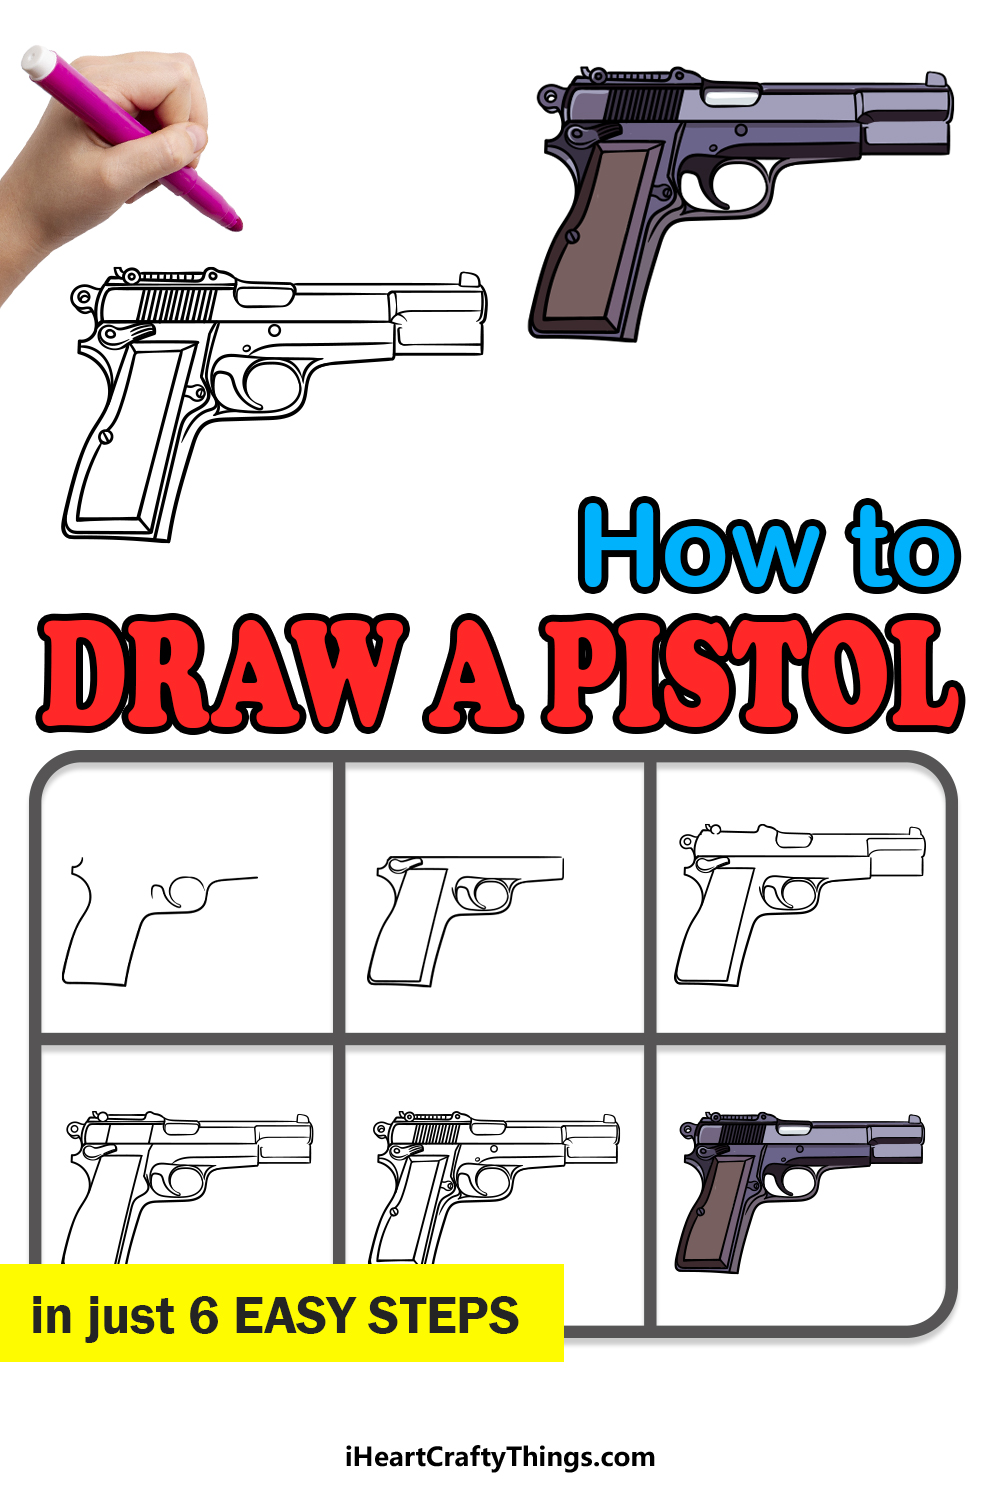 how to draw a pistol in 6 easy steps